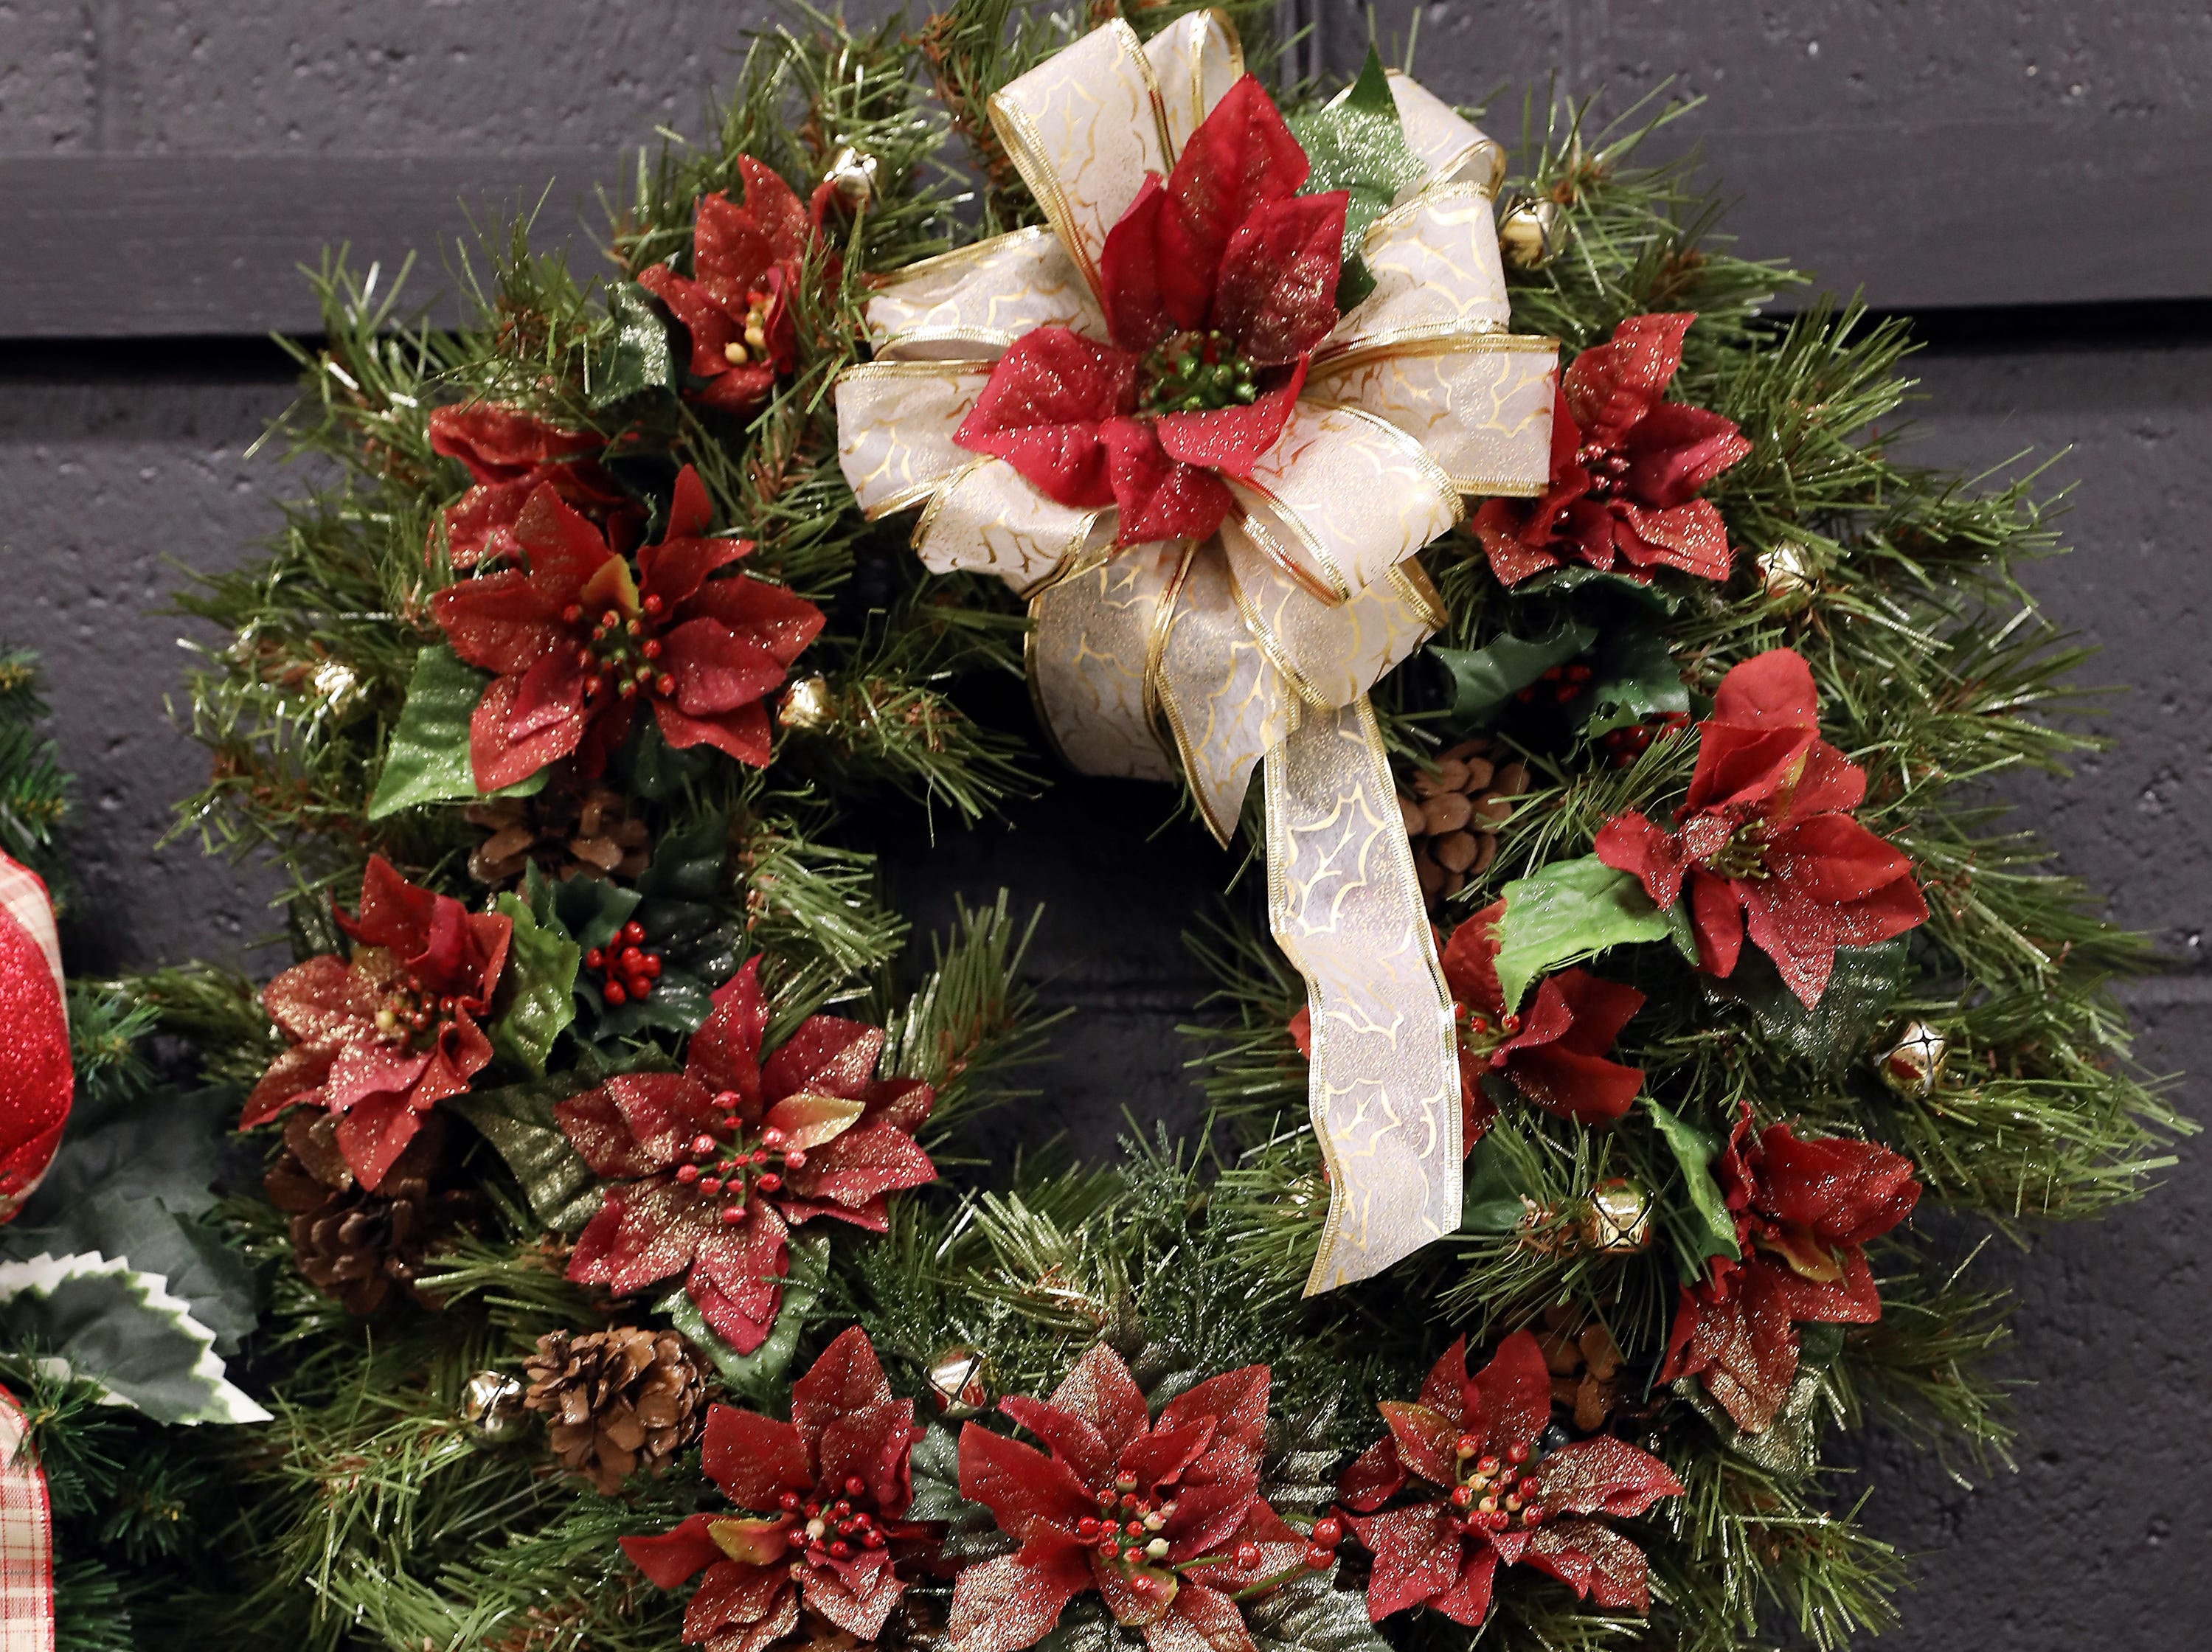 "67	11:15 AM	Eat in Muskingum County	Wreath	Christmas Delight	A 24"" green wreath decorated with maroon poinsettias, jingle bells and gold ribbon.		$50 Buffalo Wild Wings gift card, 1 free meal from Tee Jaye's and 5 - $5 off from Olive Garden."